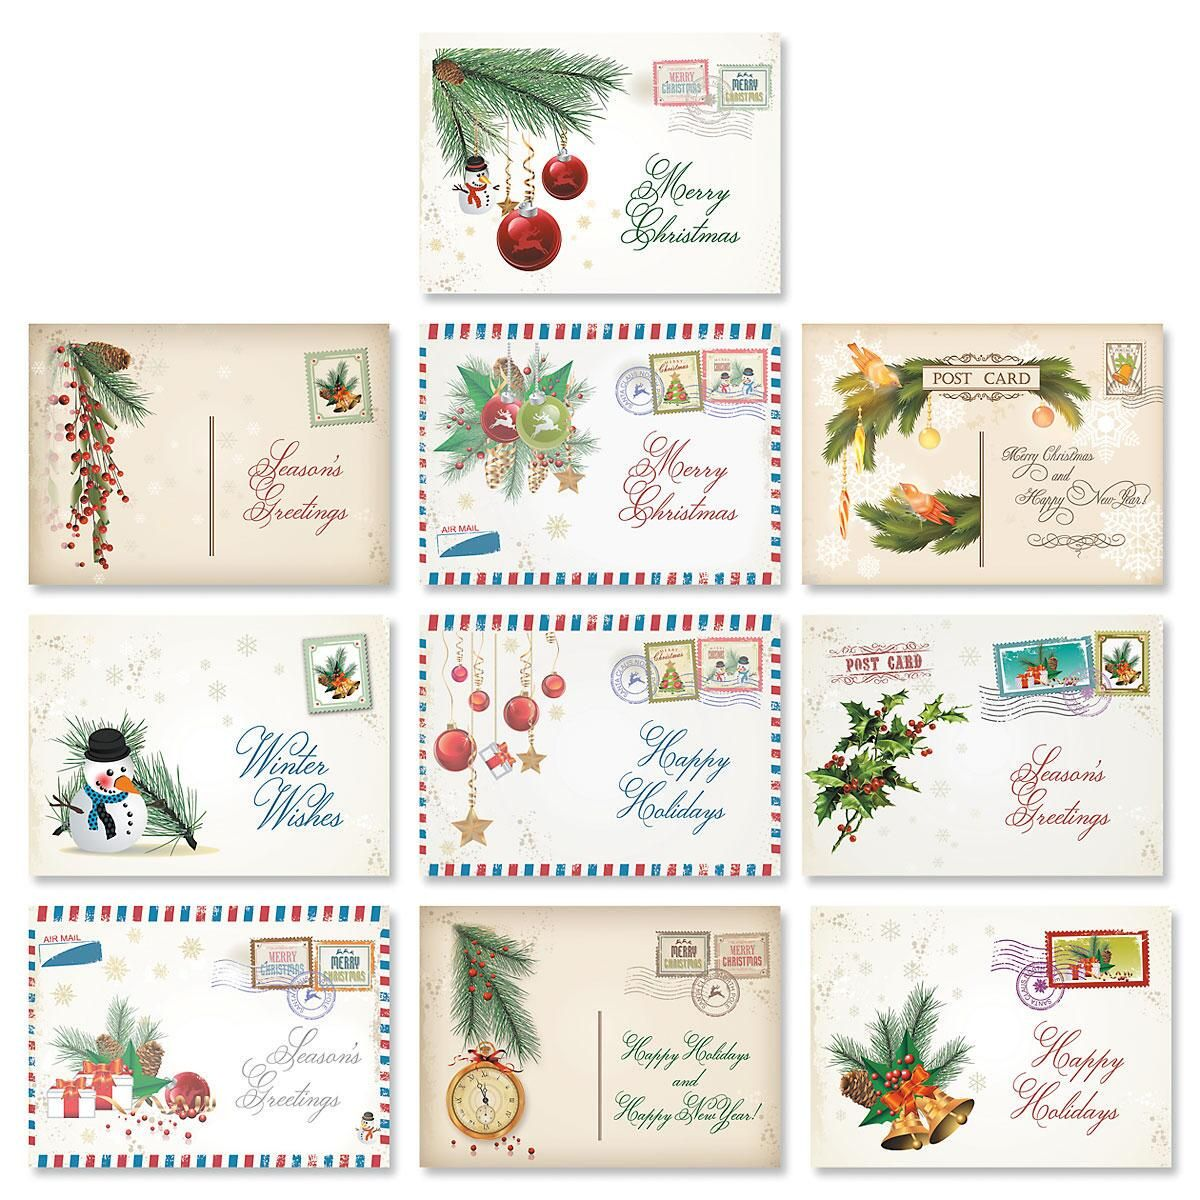 Vintage Christmas Cards Value Pack